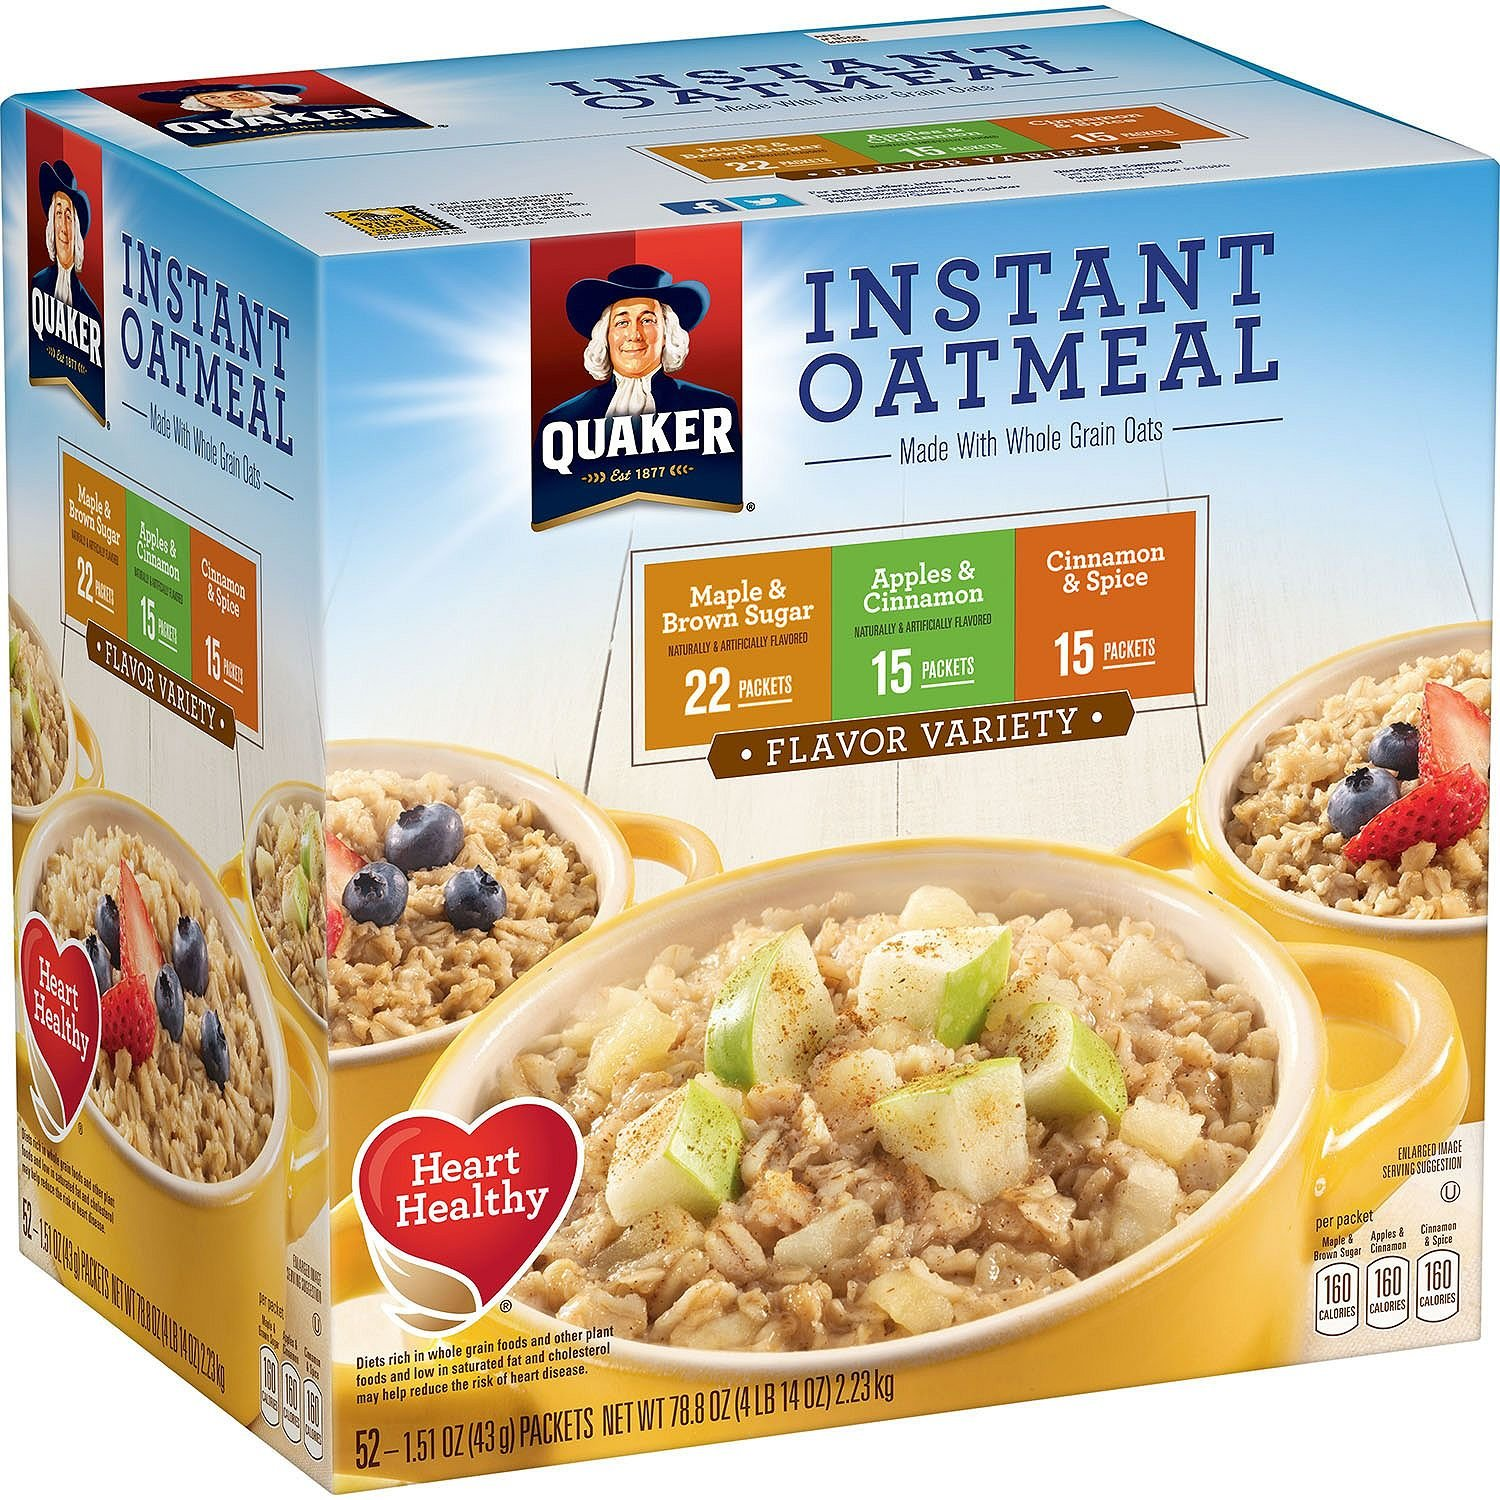 Quaker Instant Oatmeal Variety Pack 52 Pack